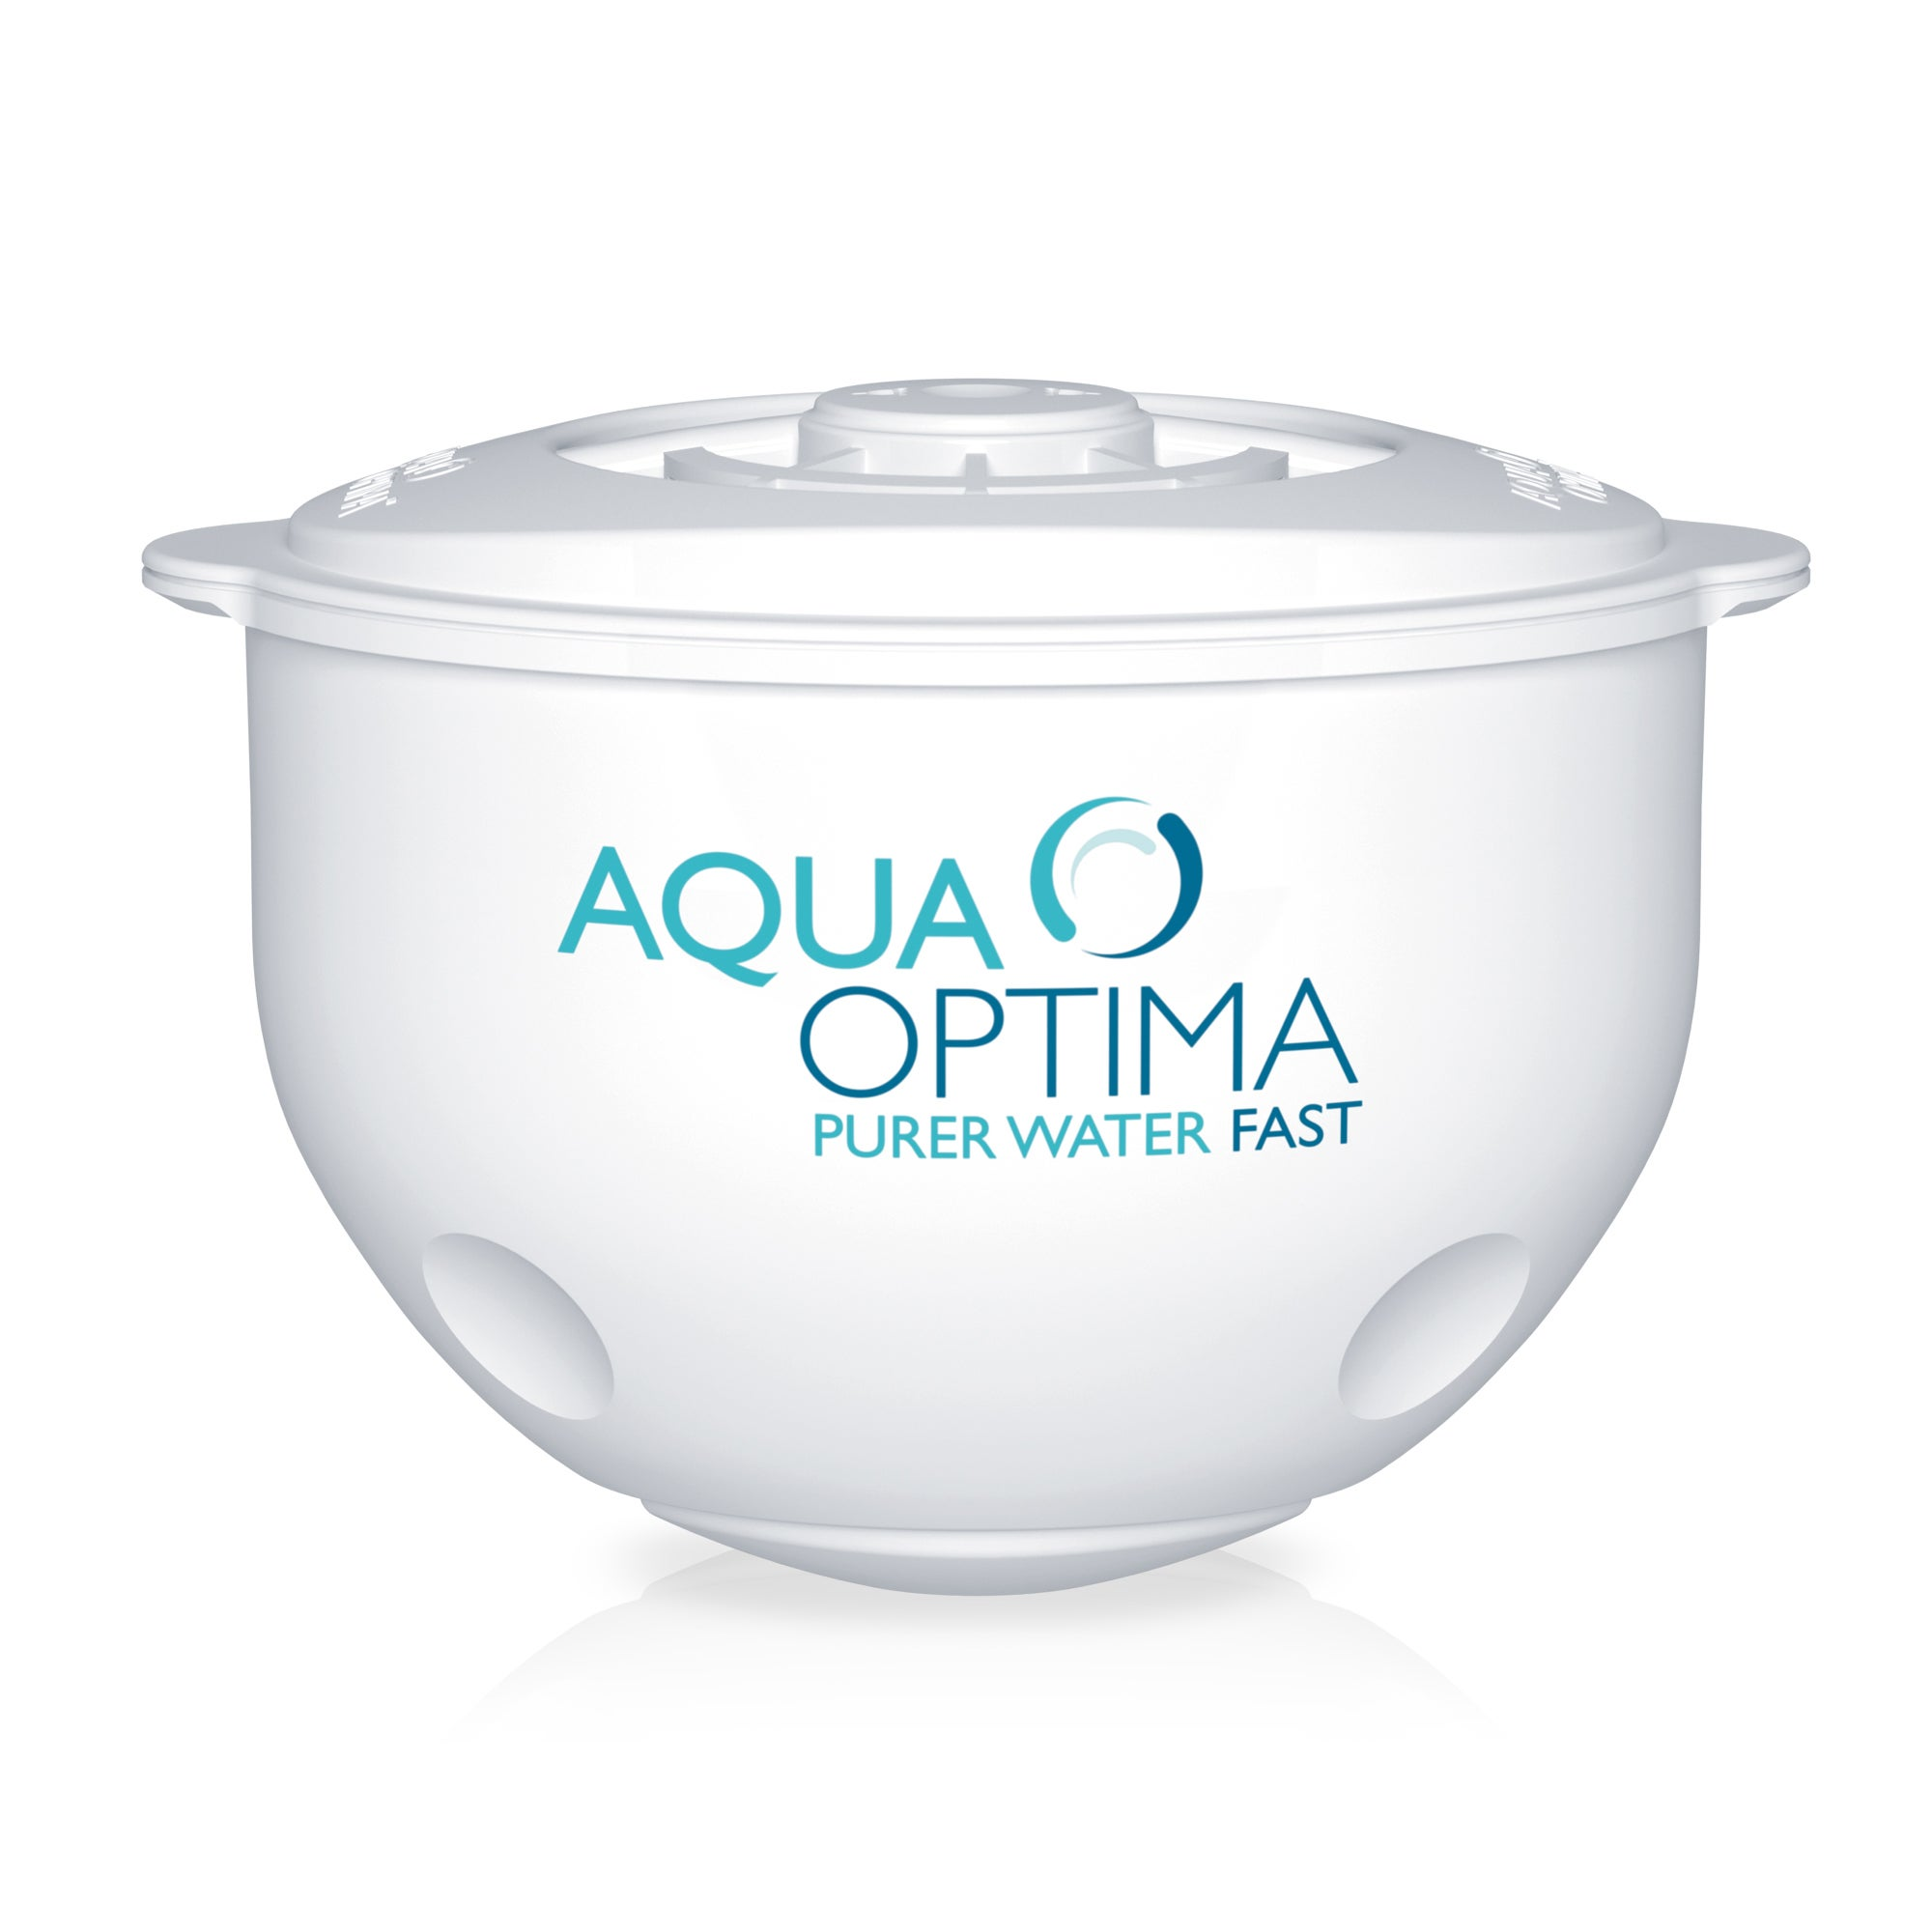 Pack of 2 Aqua Optima 30 Day Filters